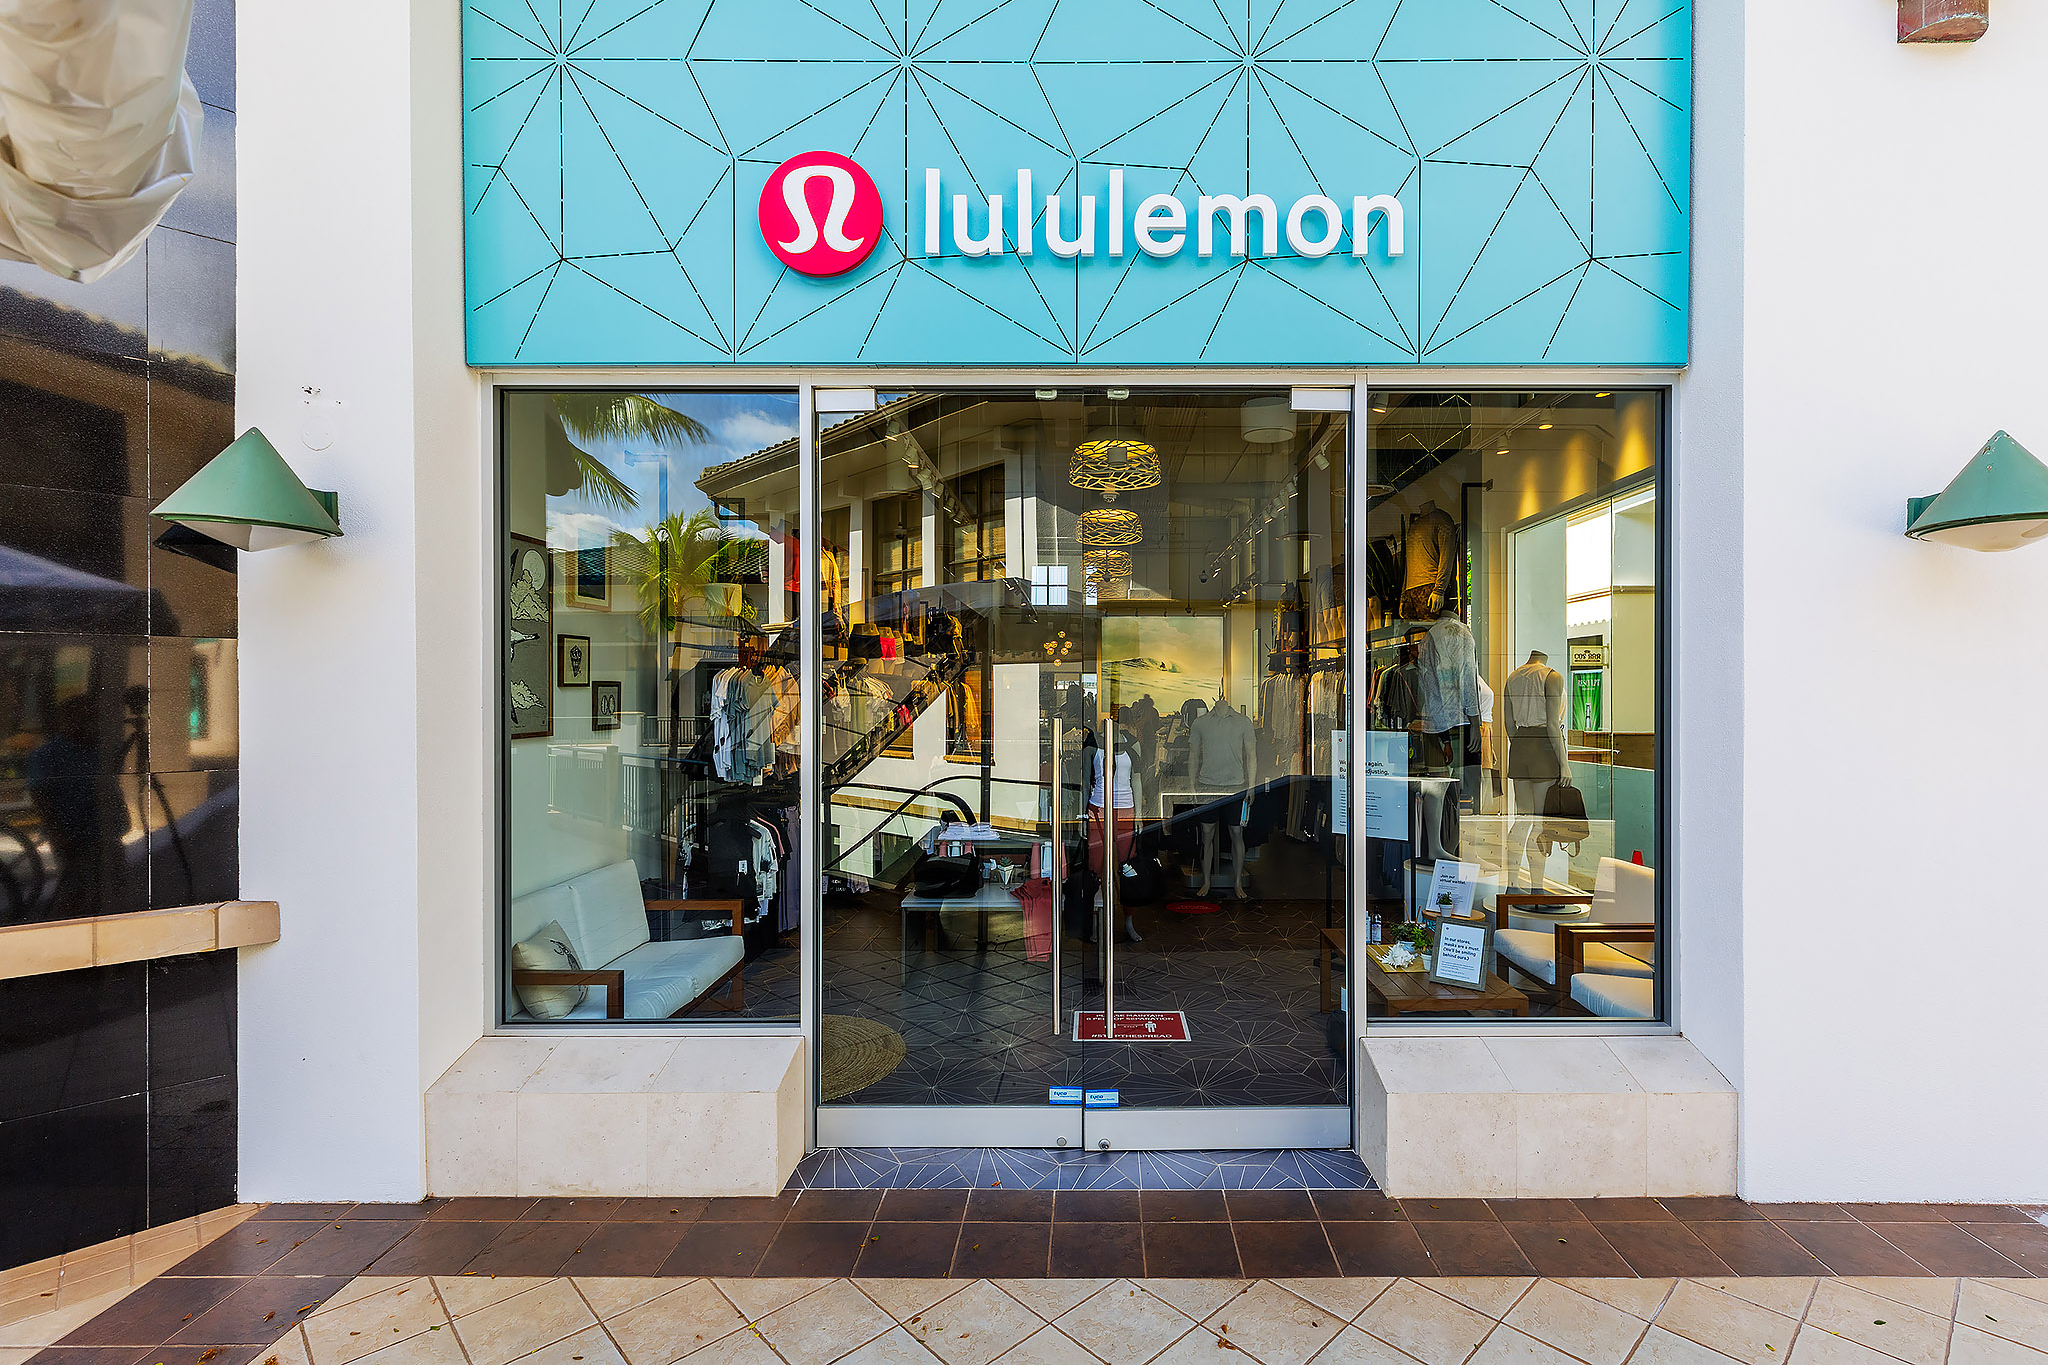 Lululemon-The-Shops-at-Wailea-08-08-2020-004 copy